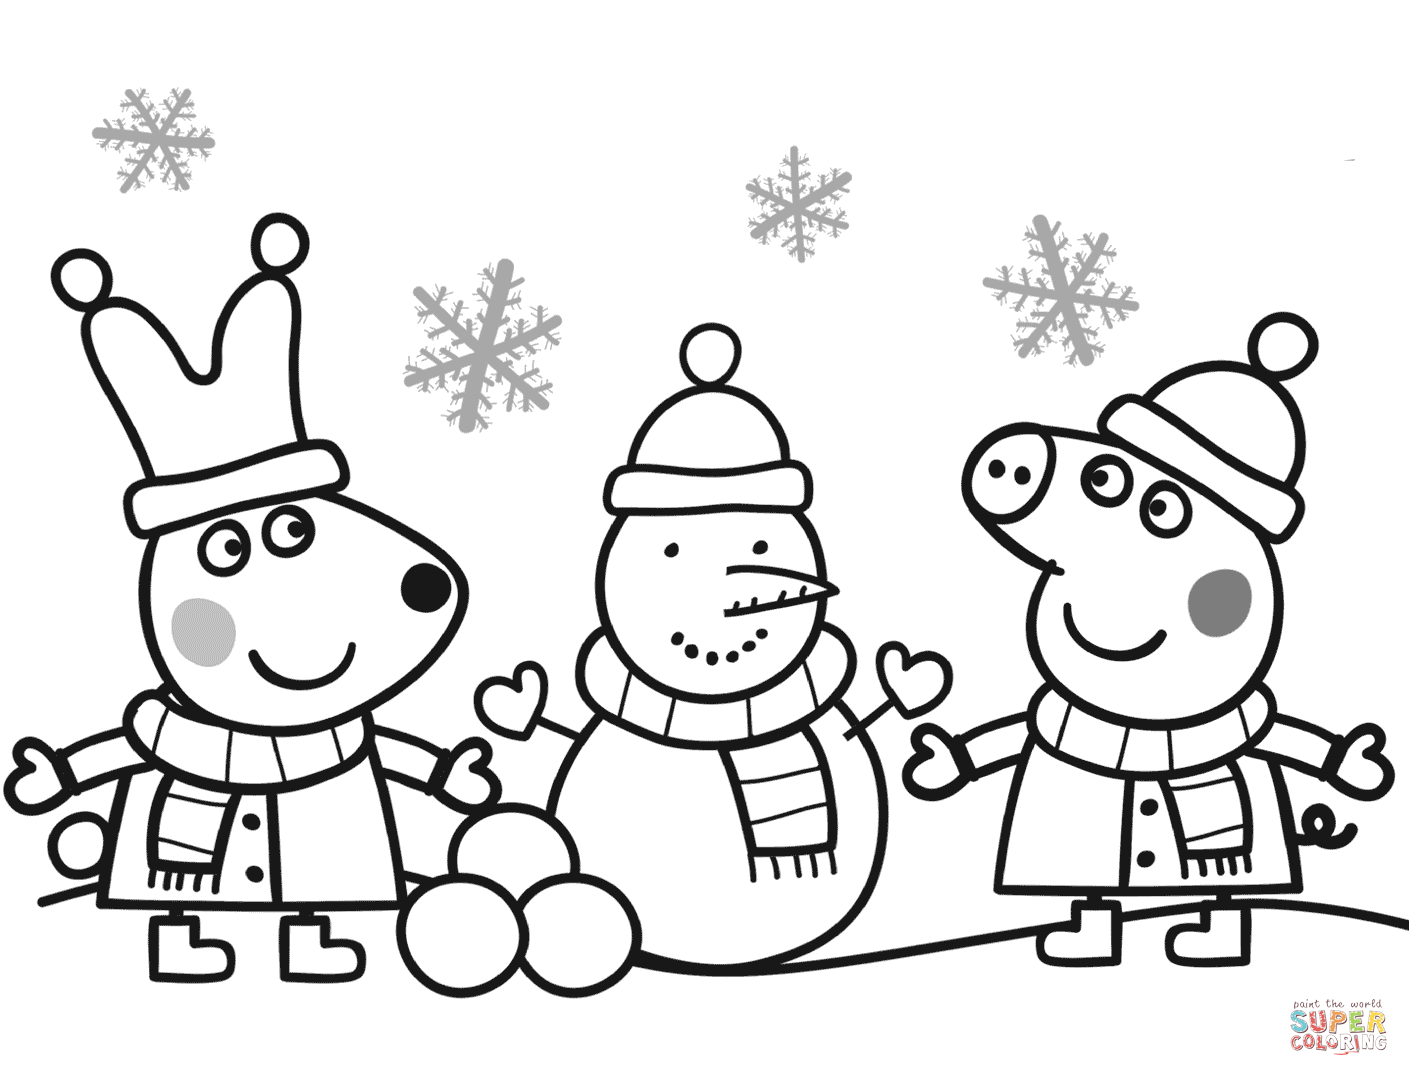 peppa pig colouring pages online peppa pig christmas coloring pages at getdrawings free online peppa pages pig colouring